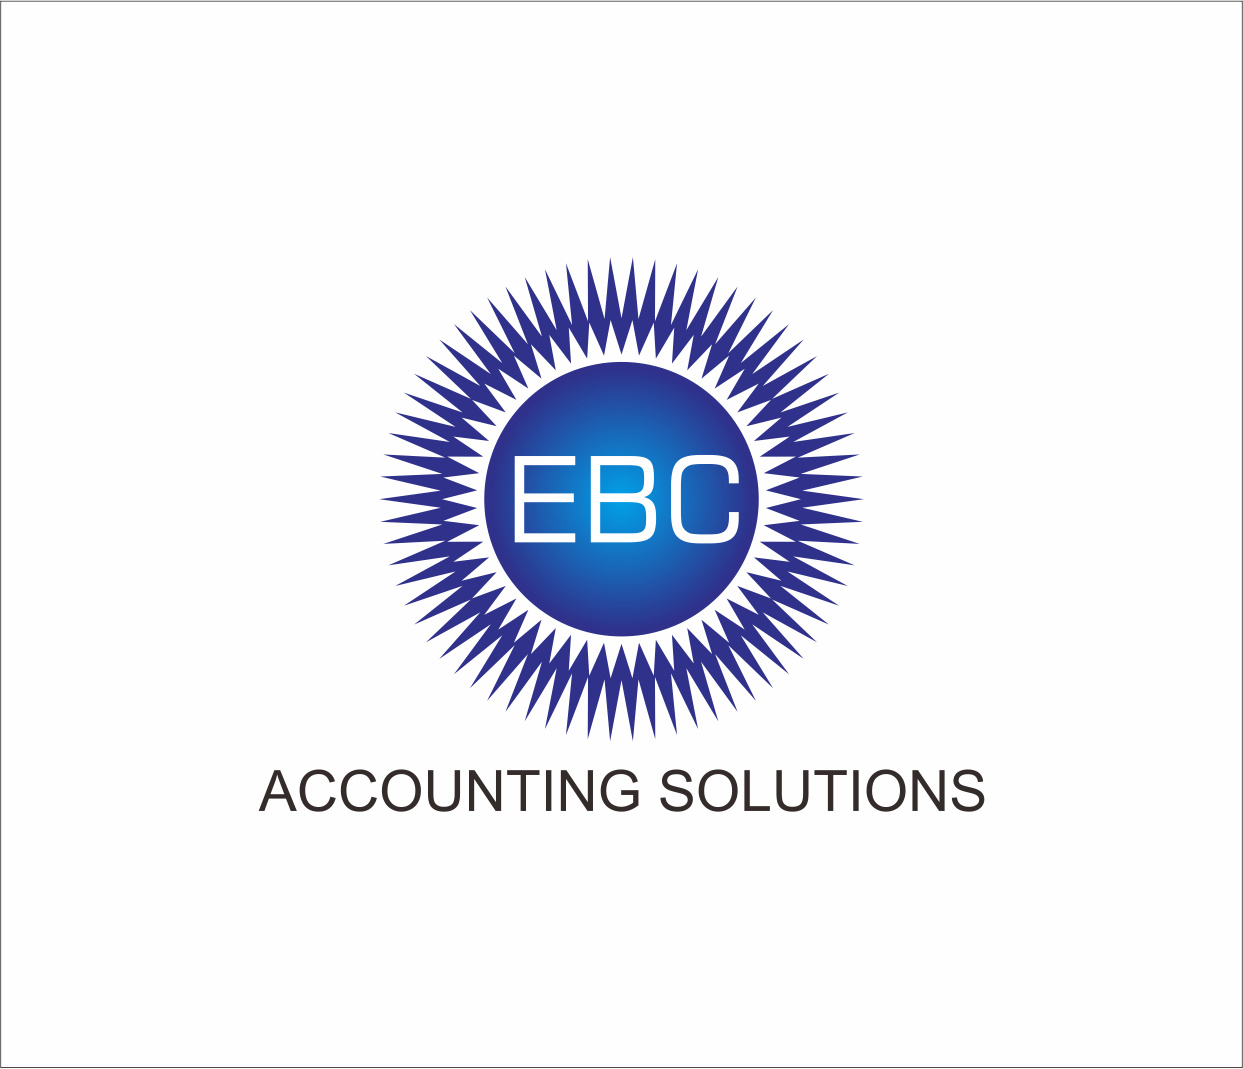 Logo Design by Armada Jamaluddin - Entry No. 164 in the Logo Design Contest New Logo Design for EBC Accounting Solutions.